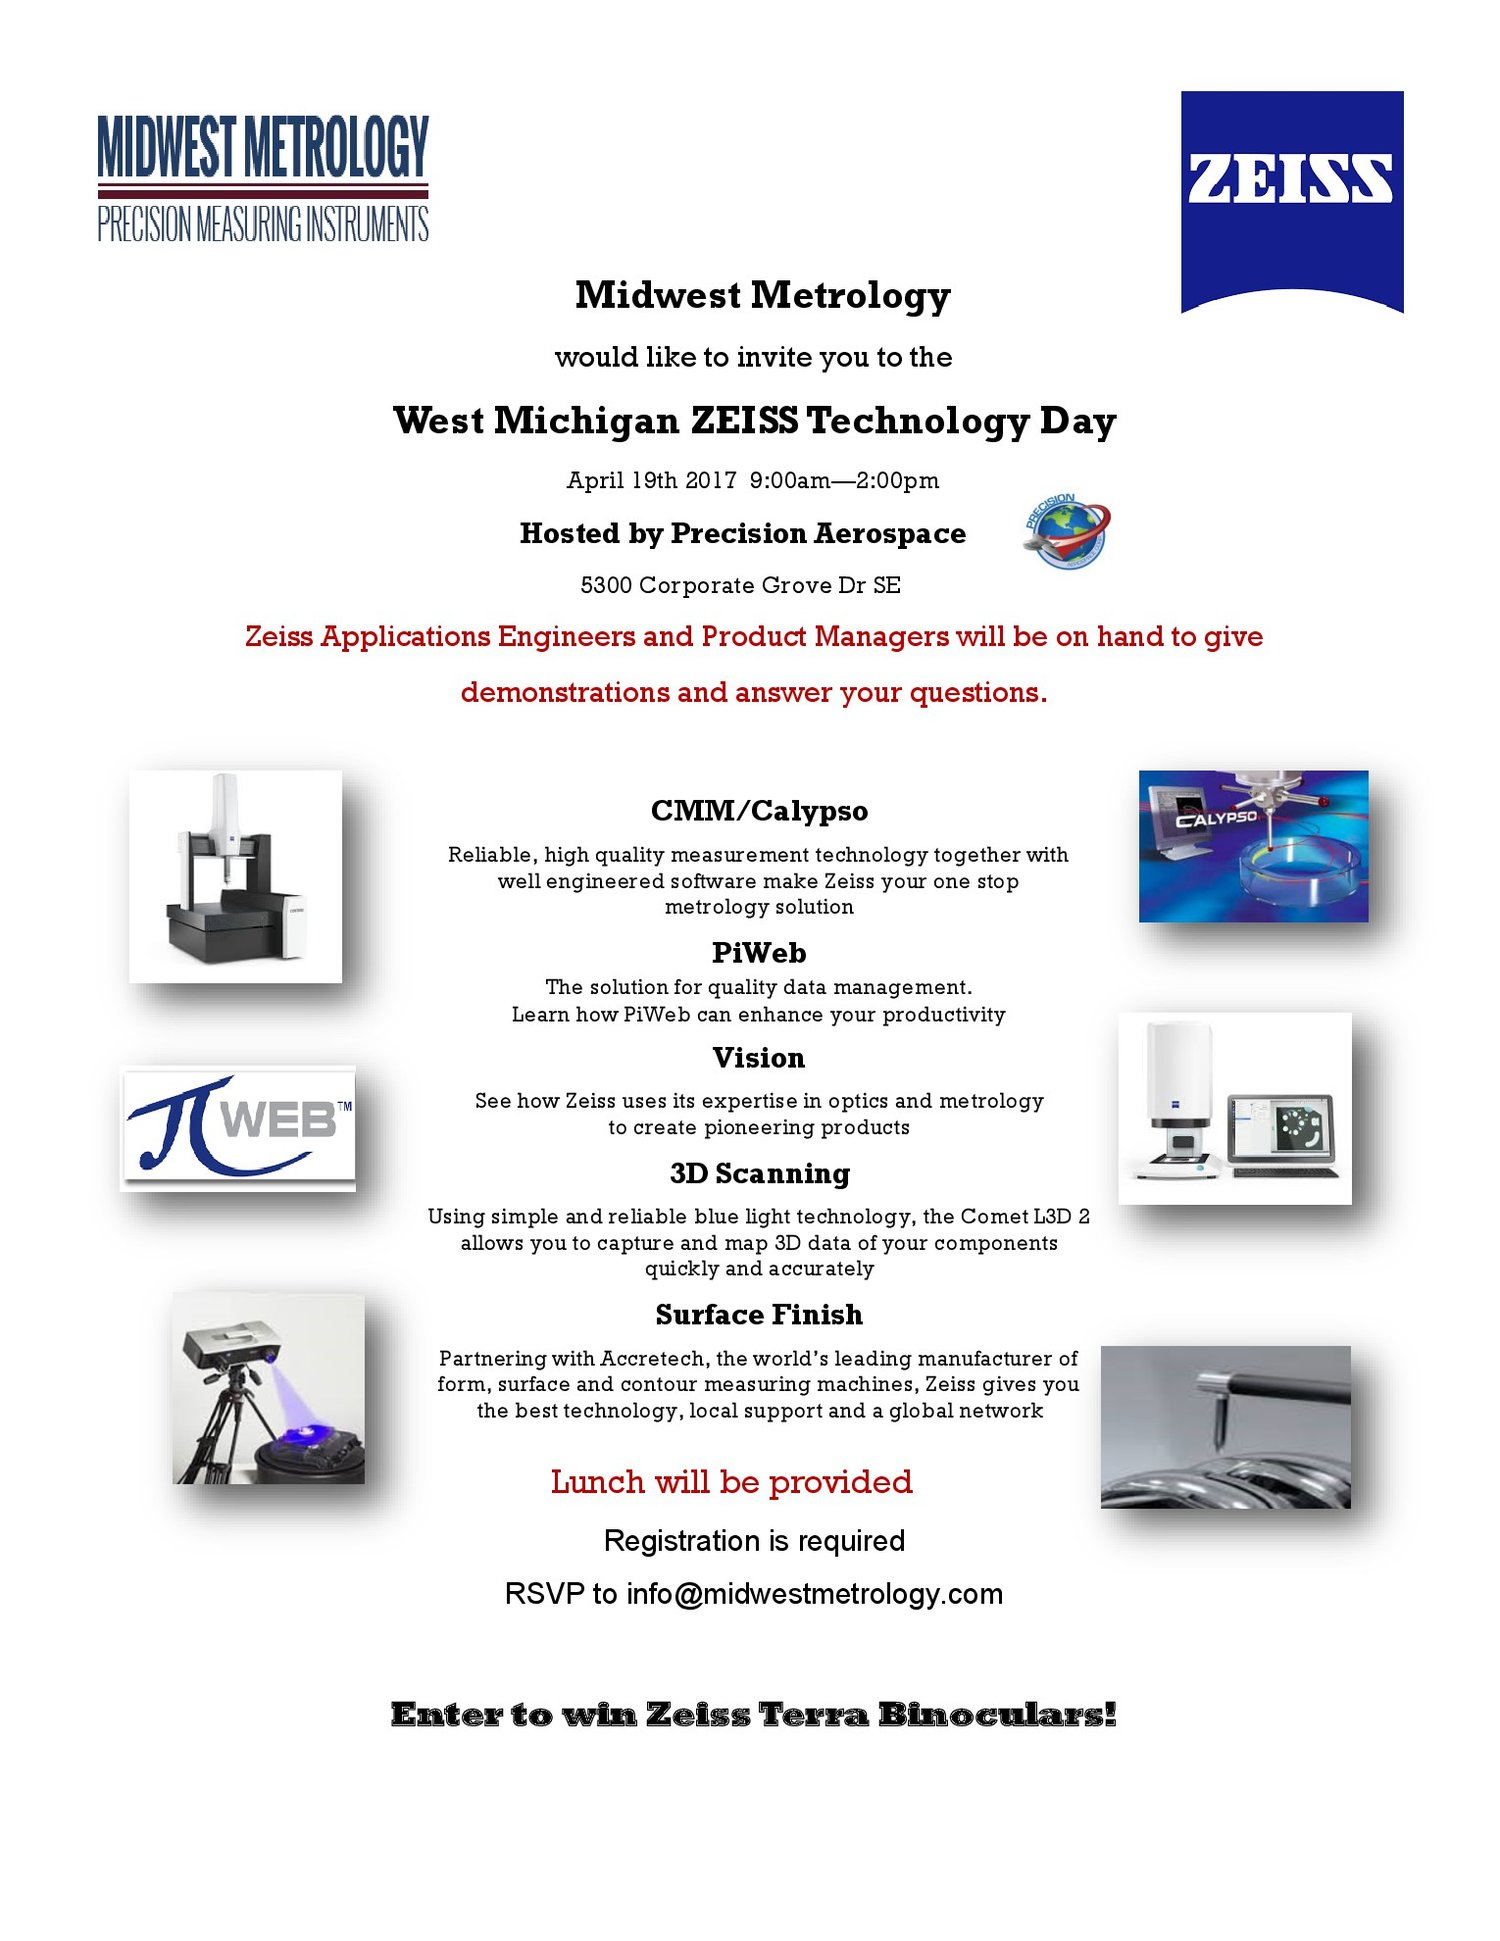 West Michigan ZEISS Technology Day - Hosted by Precision Aerospace